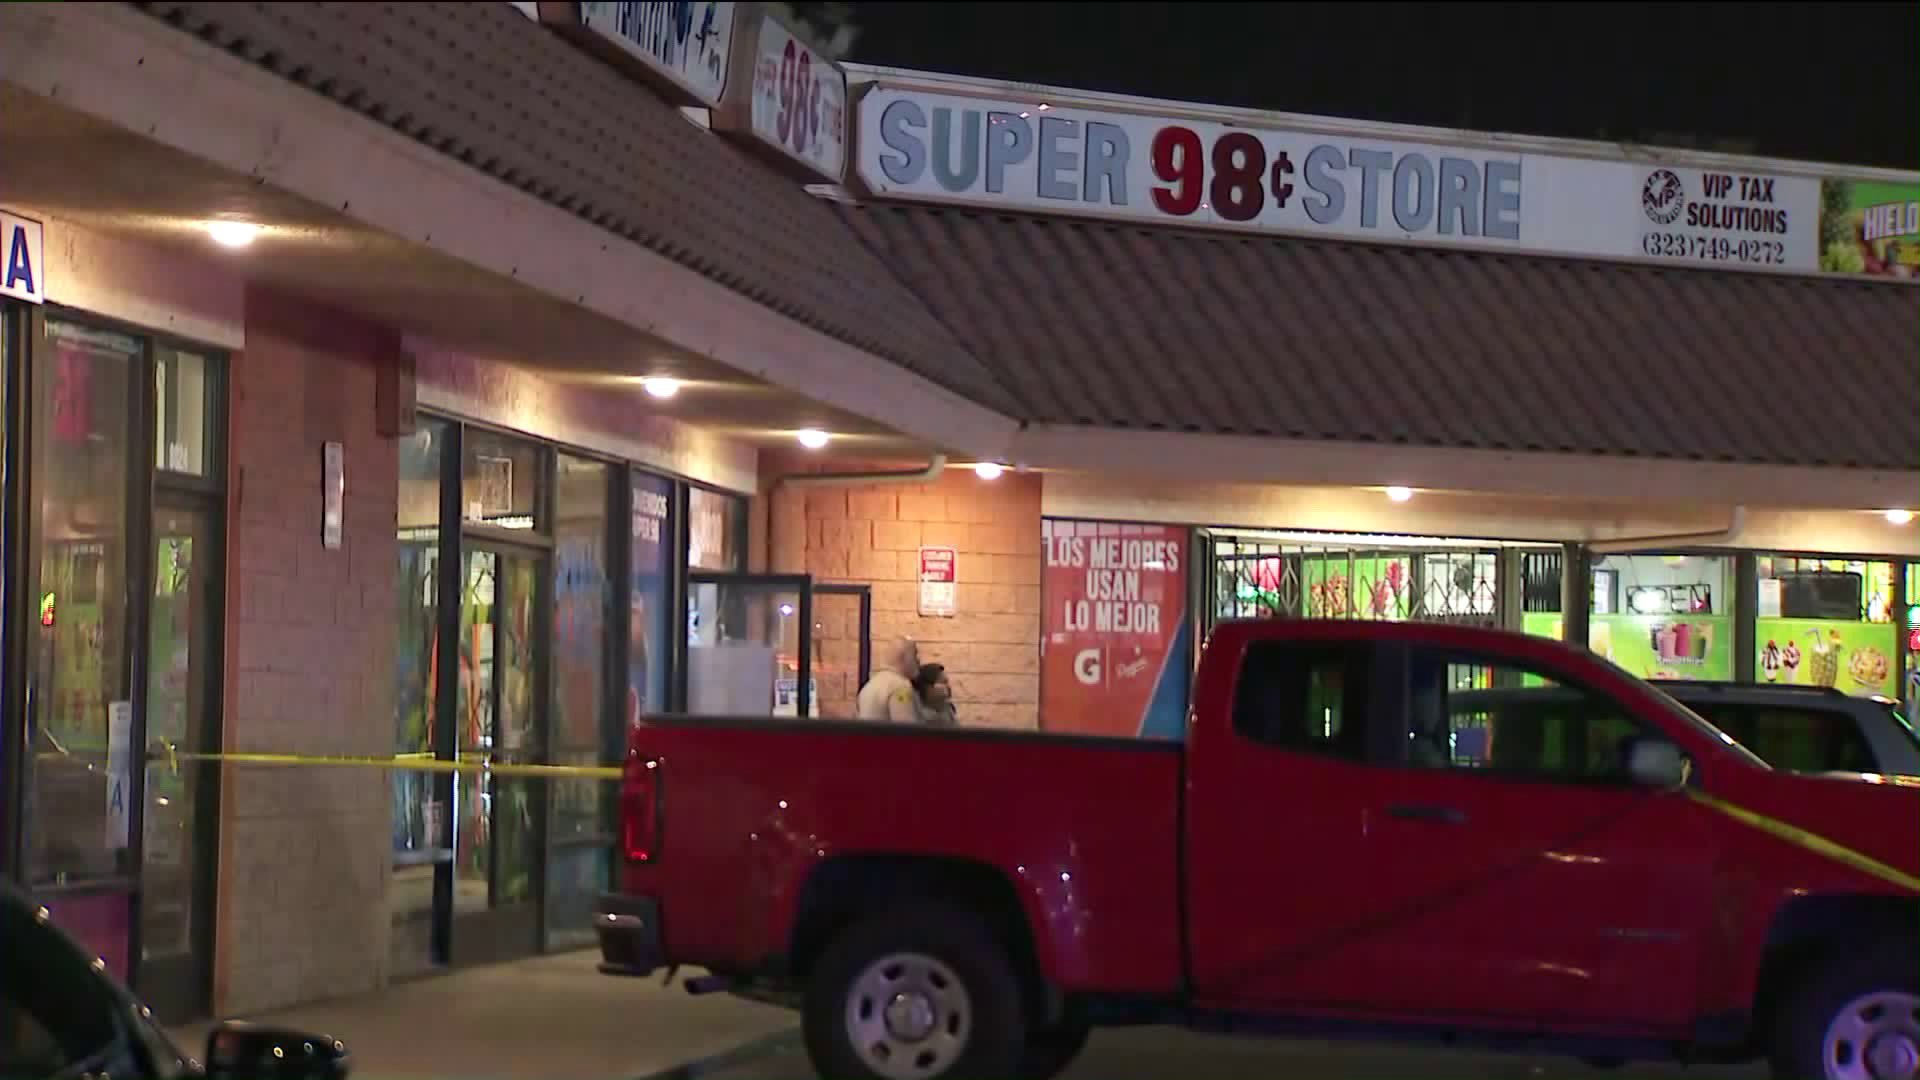 Deputies investigate a shooting that left a woman wounded in the head at the Super 98 Cent Store in Cudahy on Feb. 23, 2020. (Credit: KTLA)